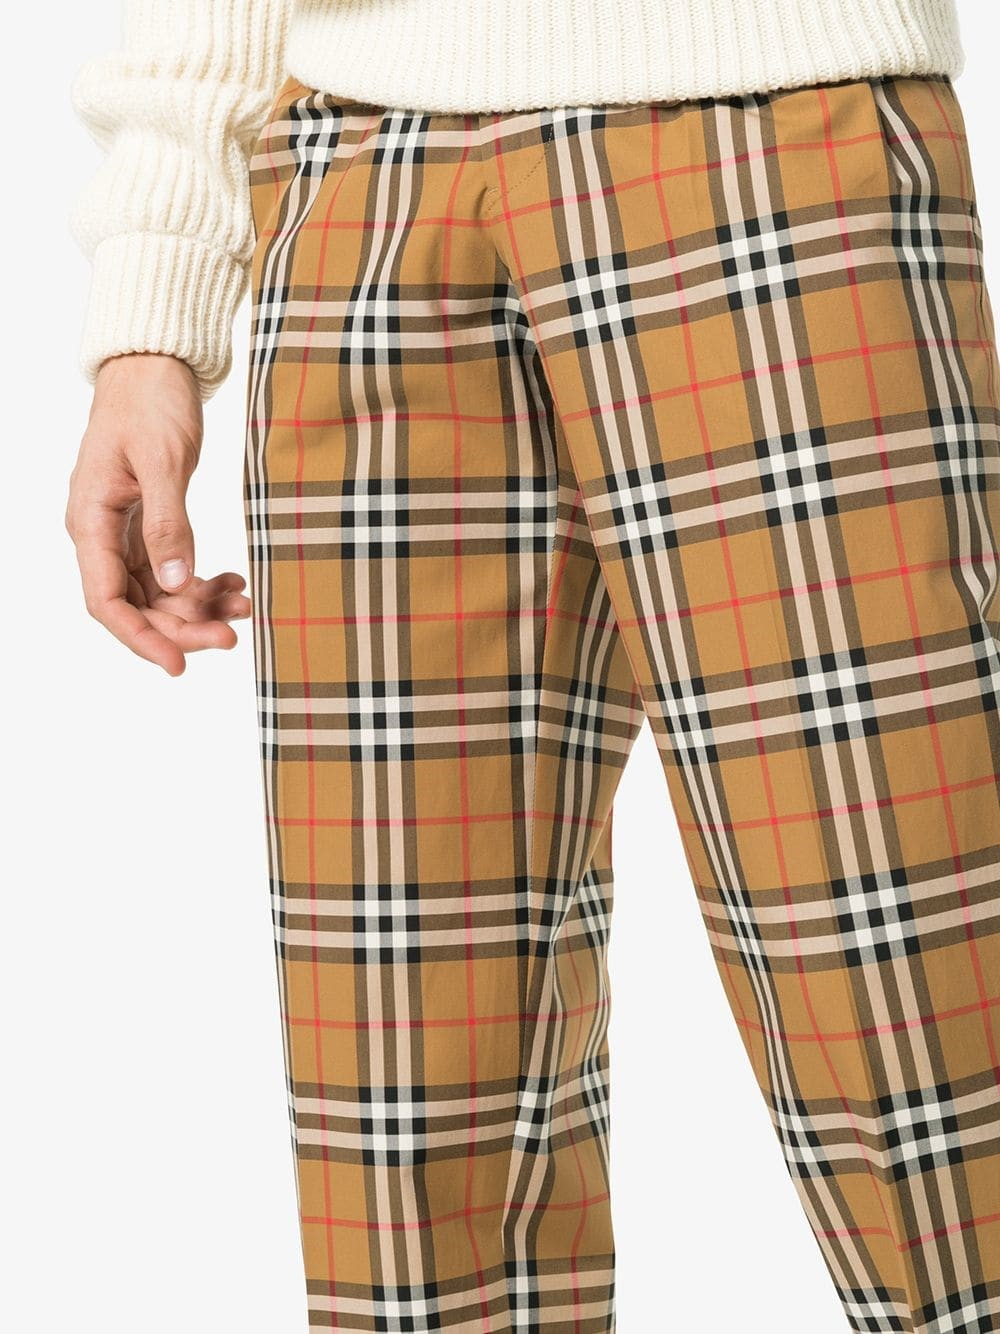 Penn Badgley style Burberry classic check print tailored cotton trousers